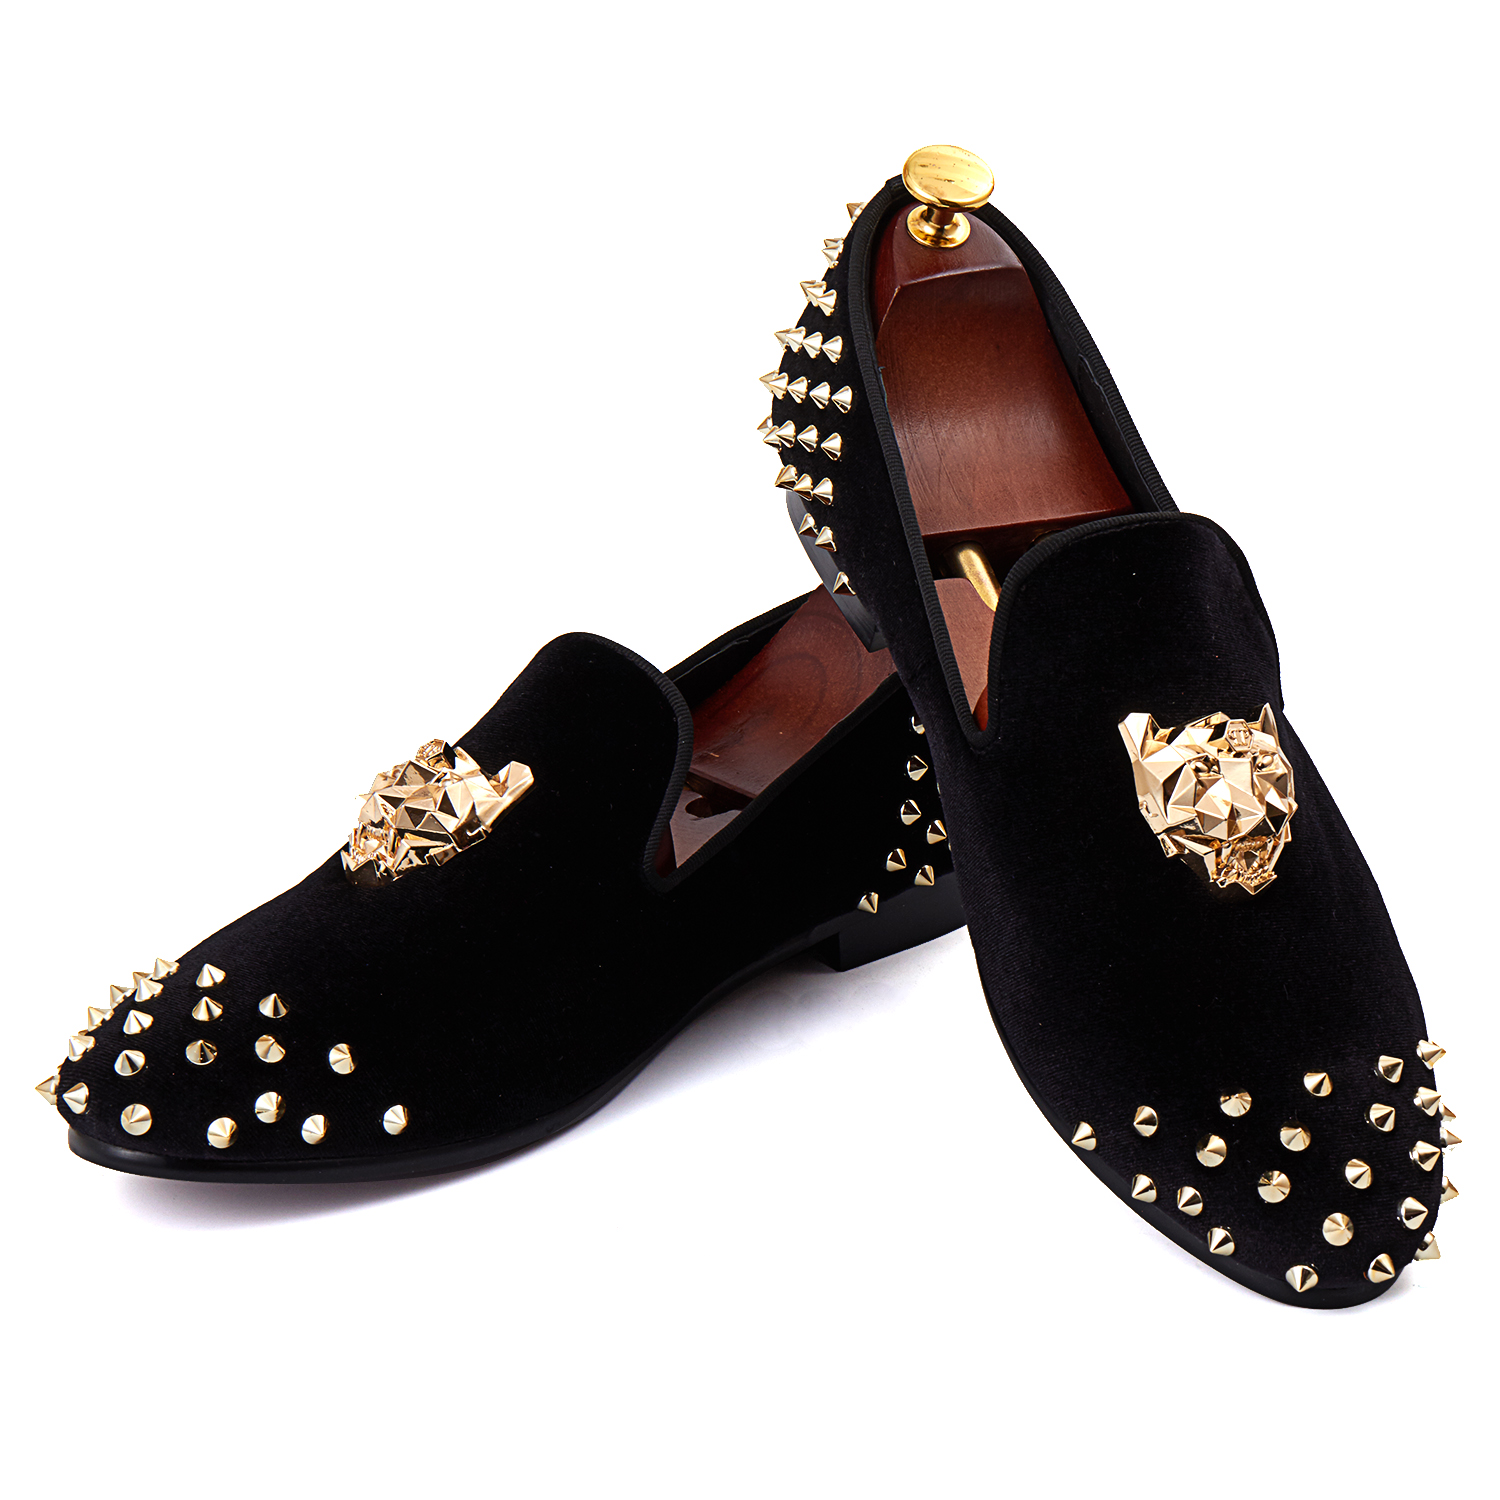 Branded Flat Shoes Rivets Black Men Velvet Loafers Animal Buckle Dress Shoes With Spikes Red Bottom